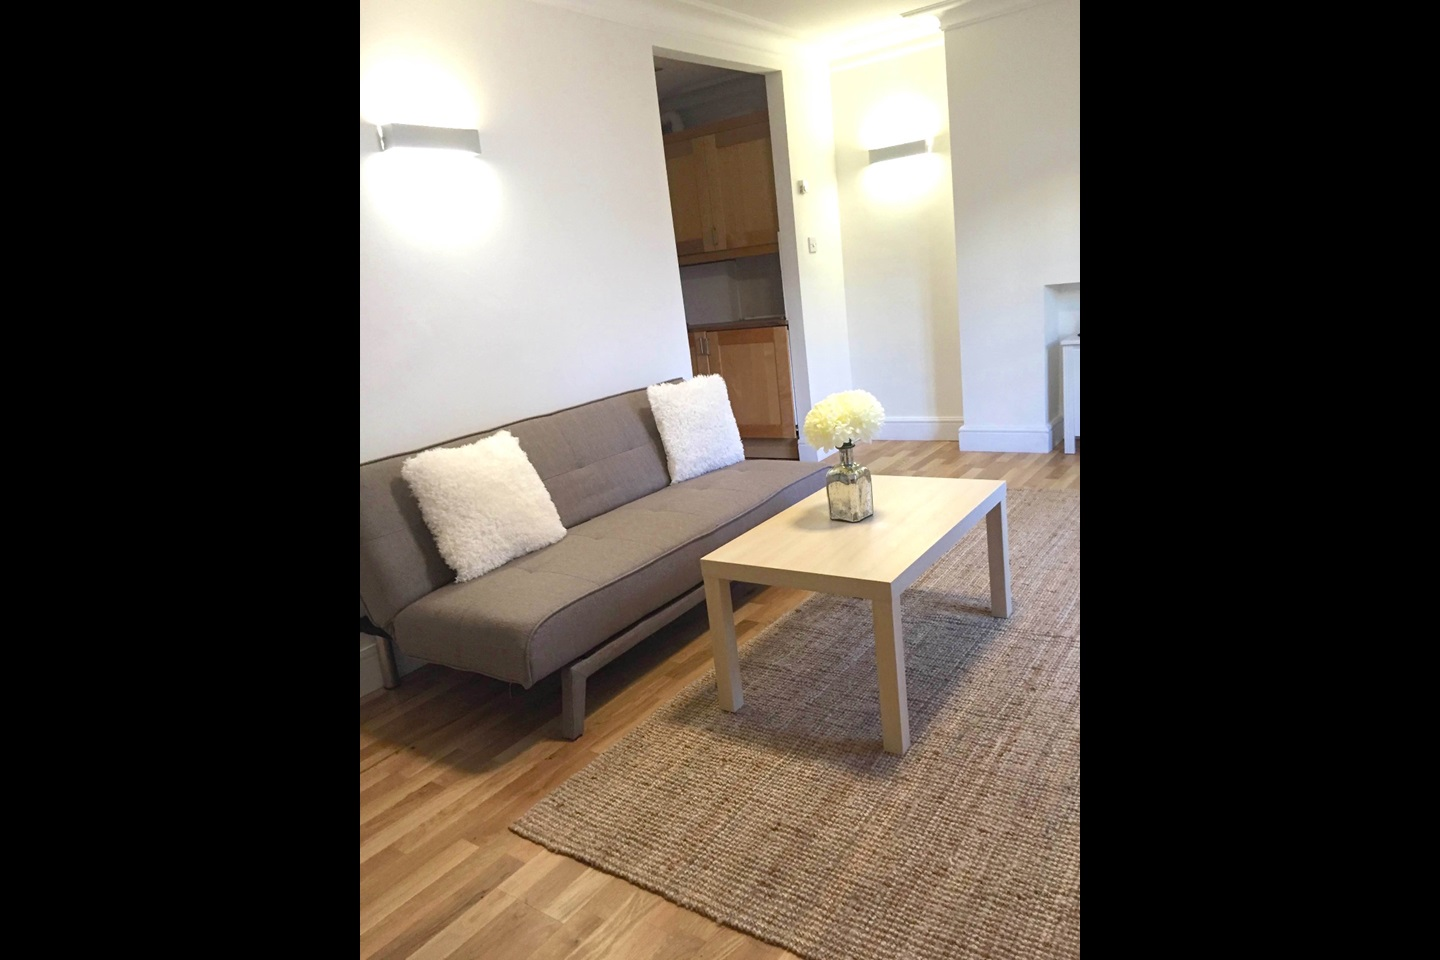 london 1 bed flat london n1 to rent now for 1 p m